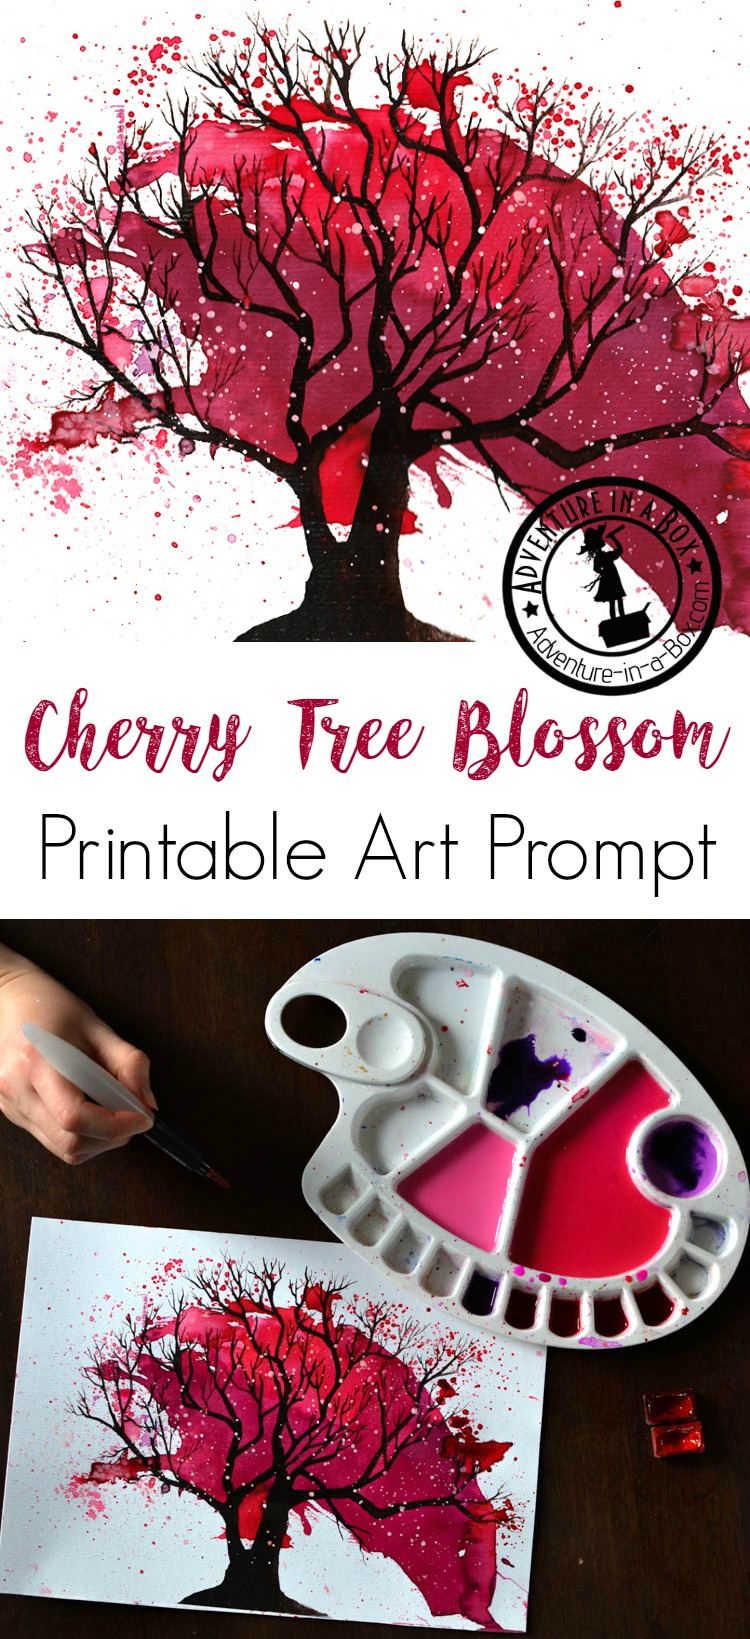 Paint blooming cherry trees, using the free printable art prompt as a starting point to experiment with the fun process art technique of splattering paint. Fun spring craft for kids!